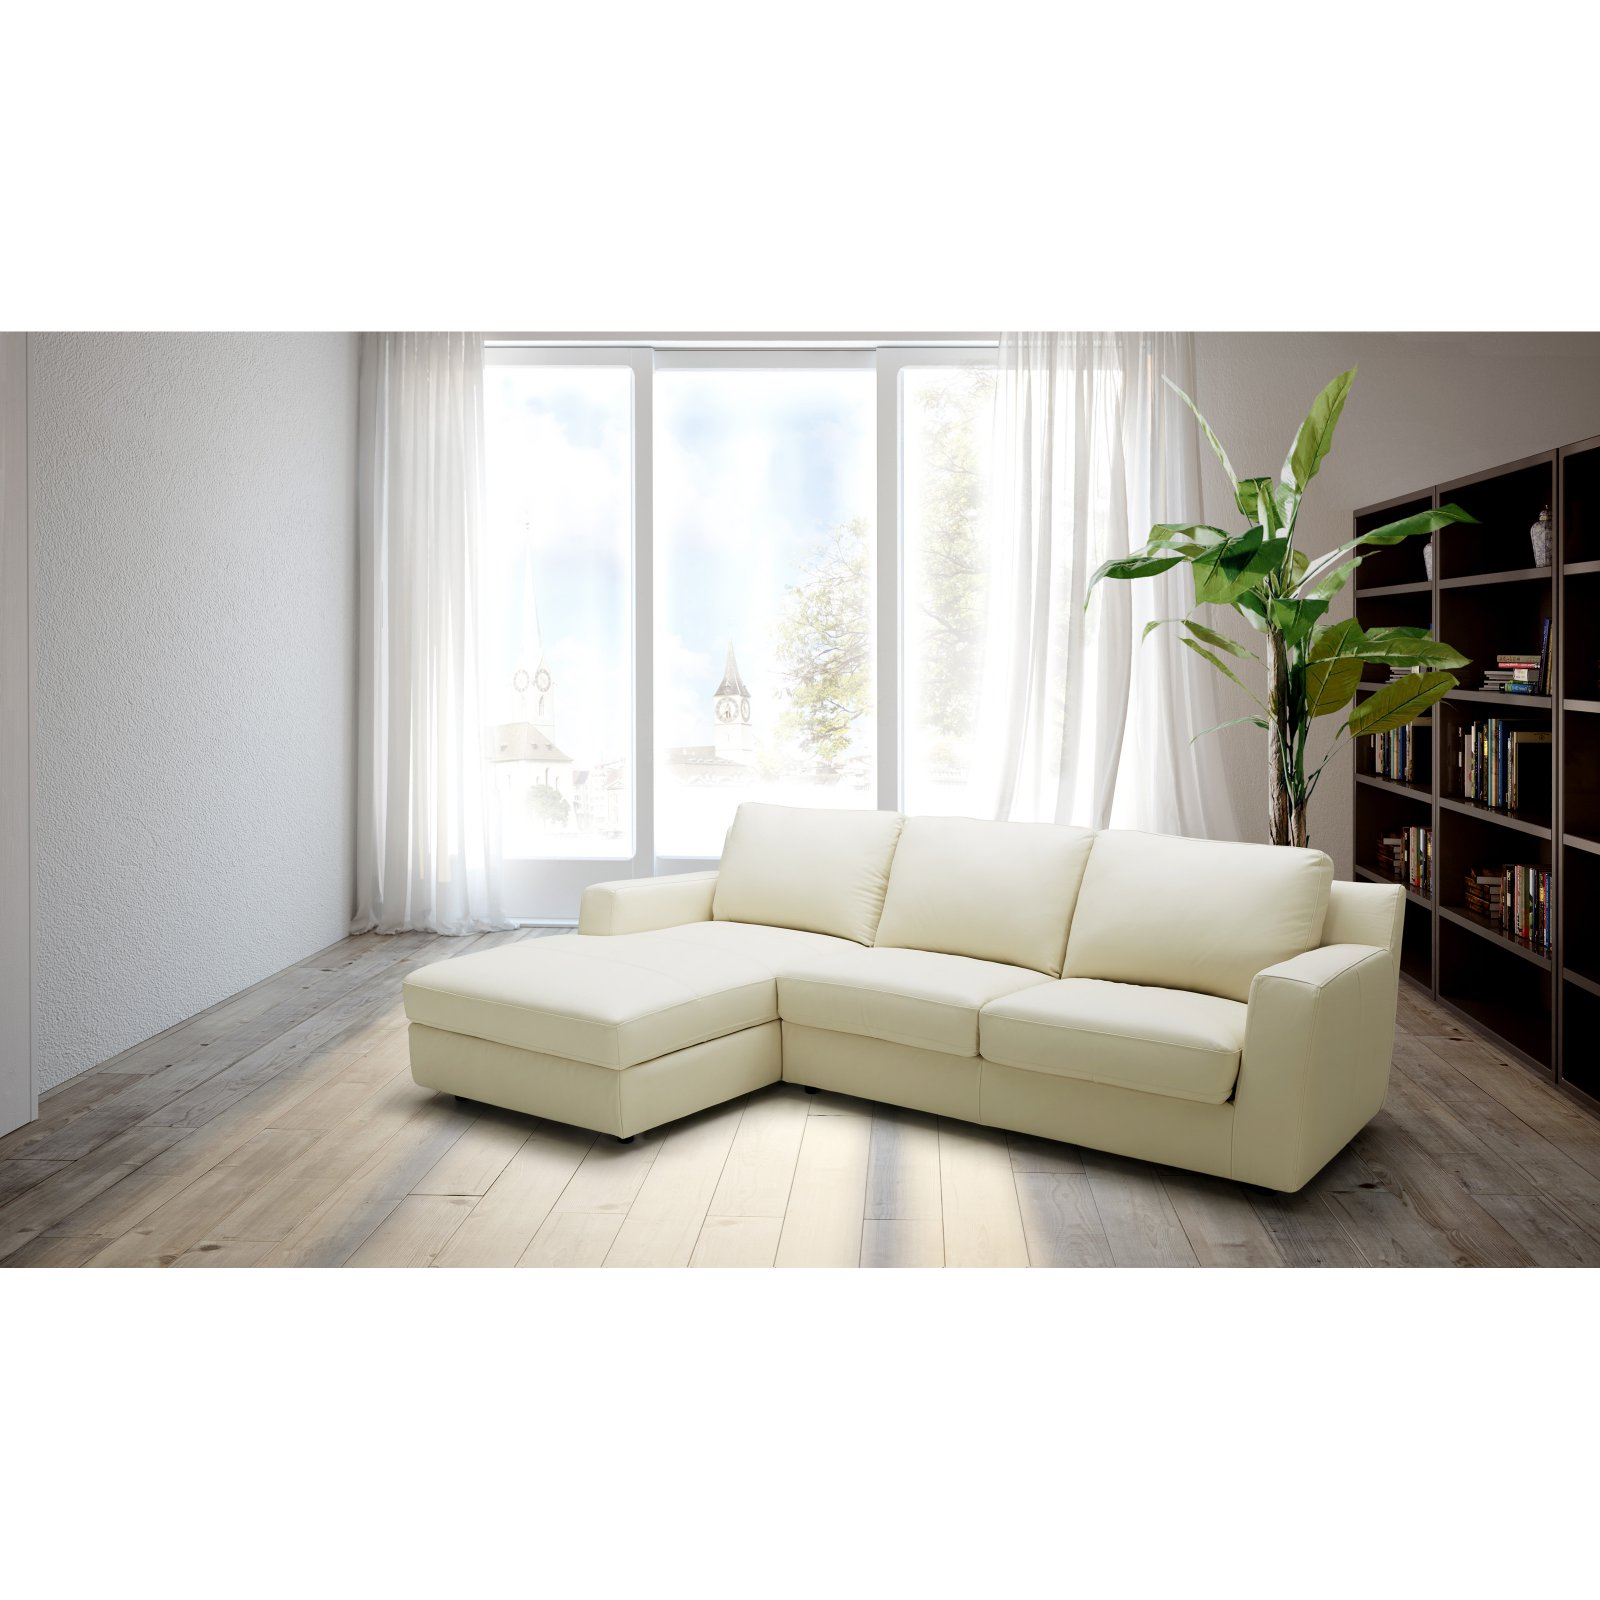 J&M Furniture Jenny Chaise Sectional Sofa